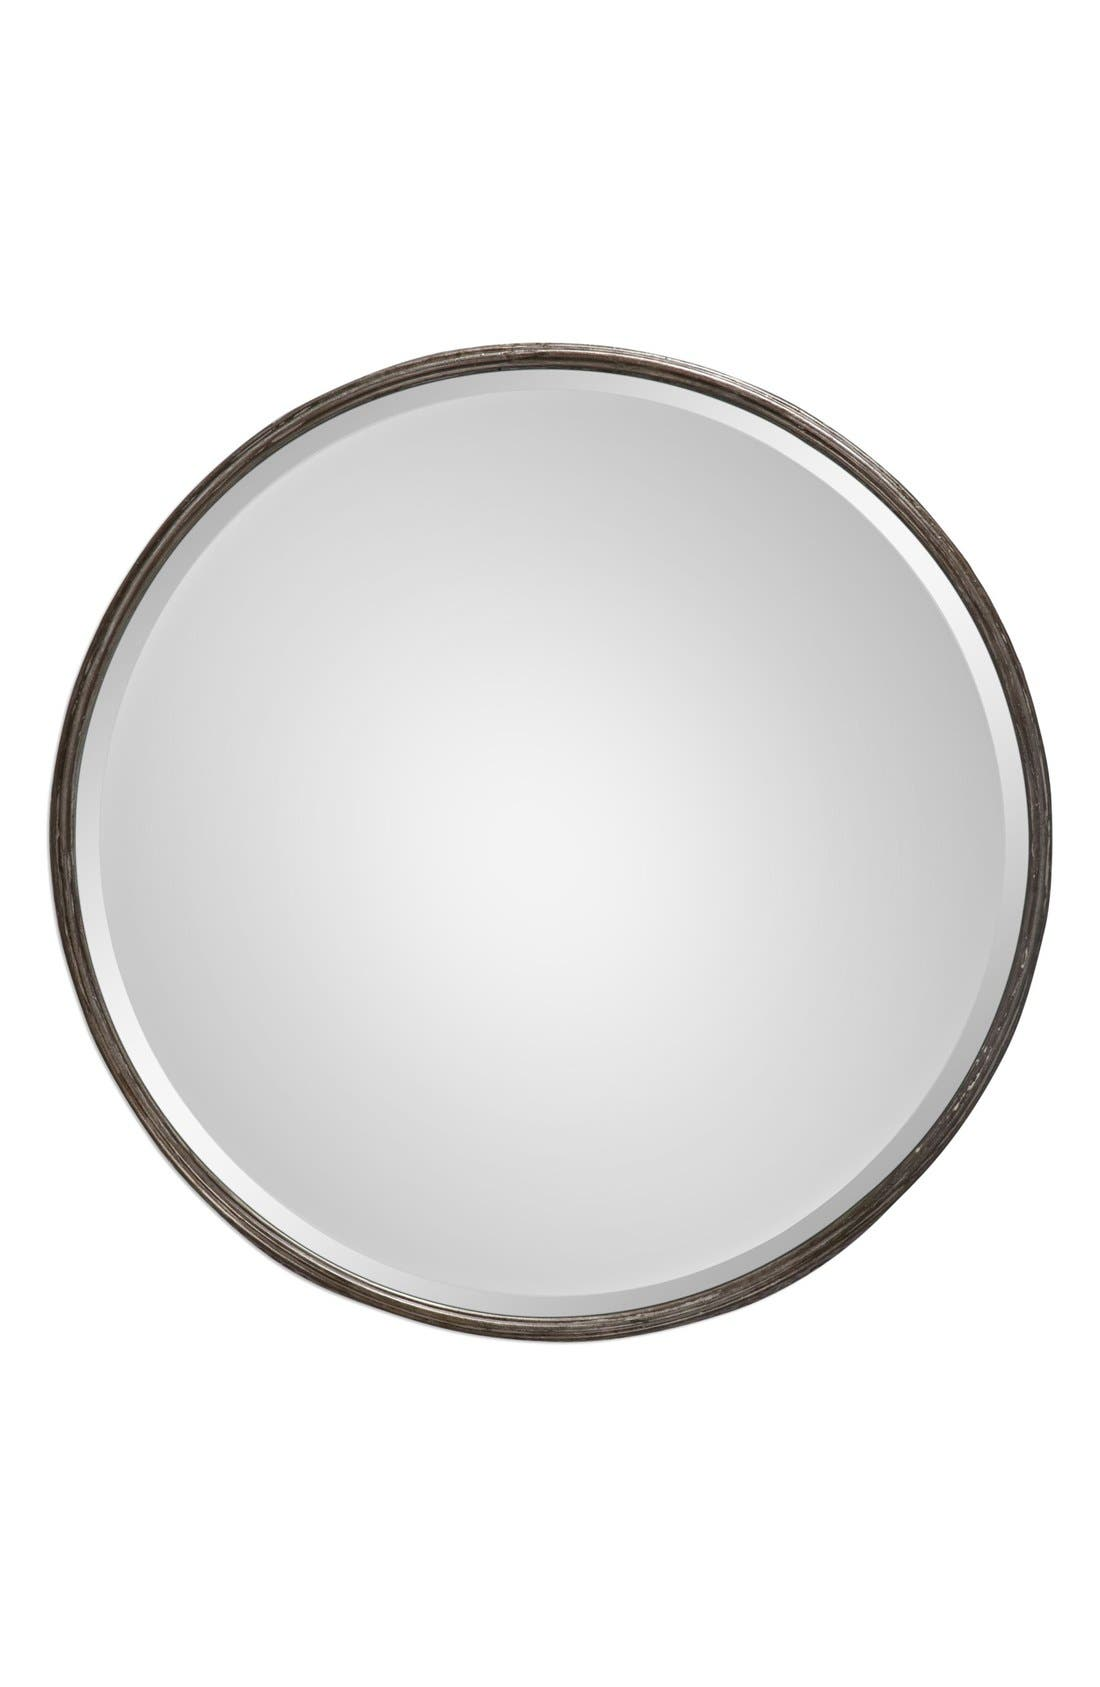 'Nova' Round Metal Mirror,                             Main thumbnail 1, color,